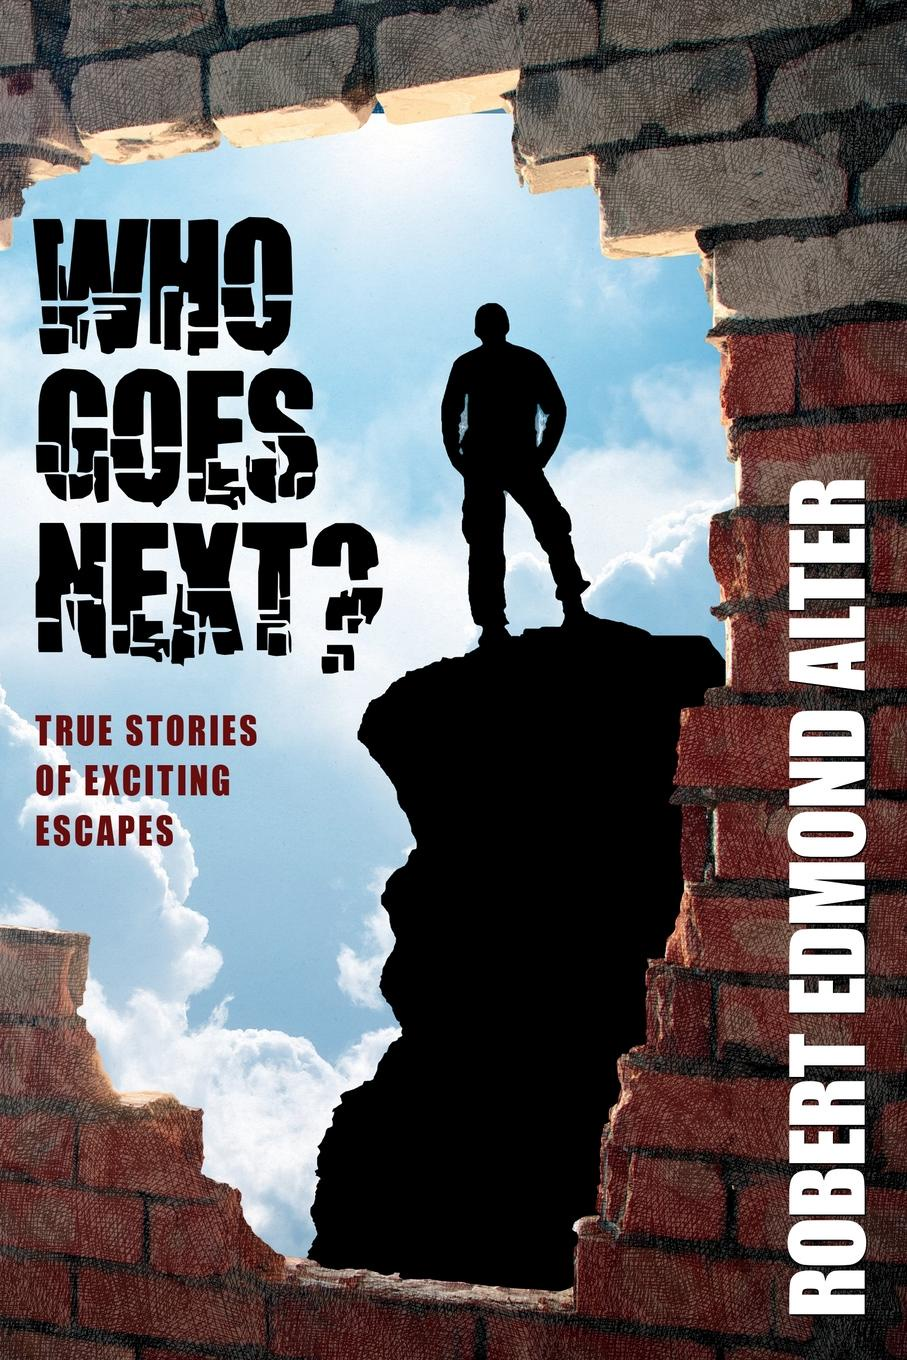 Robert Edmond Alter Who Goes Next.. True Stories of Exciting Escapes ralph j carlson talent unleashed ii powerful stories of men and women whose faith perseverance determination drive optimism and ingenuity triumphed over all obstacles